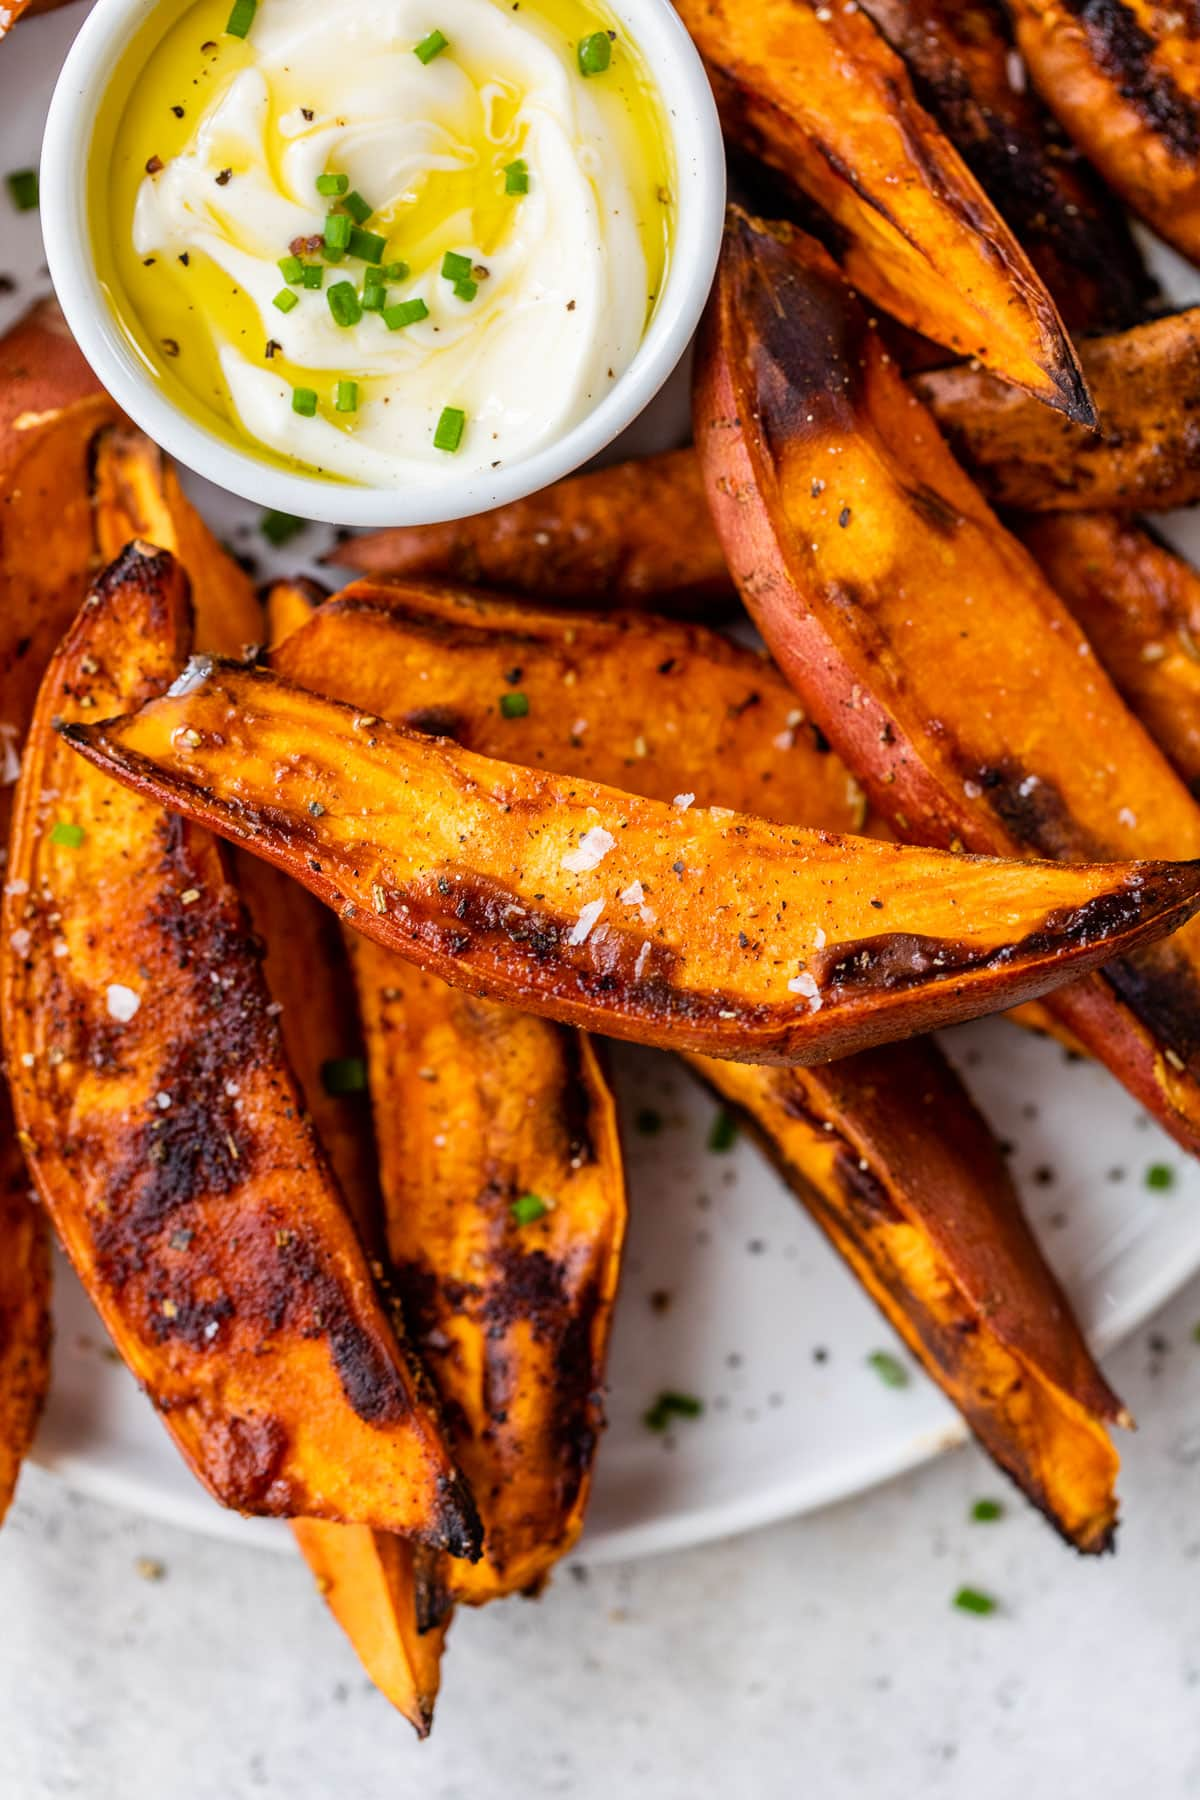 Sweet potato wedges on a plate with dip